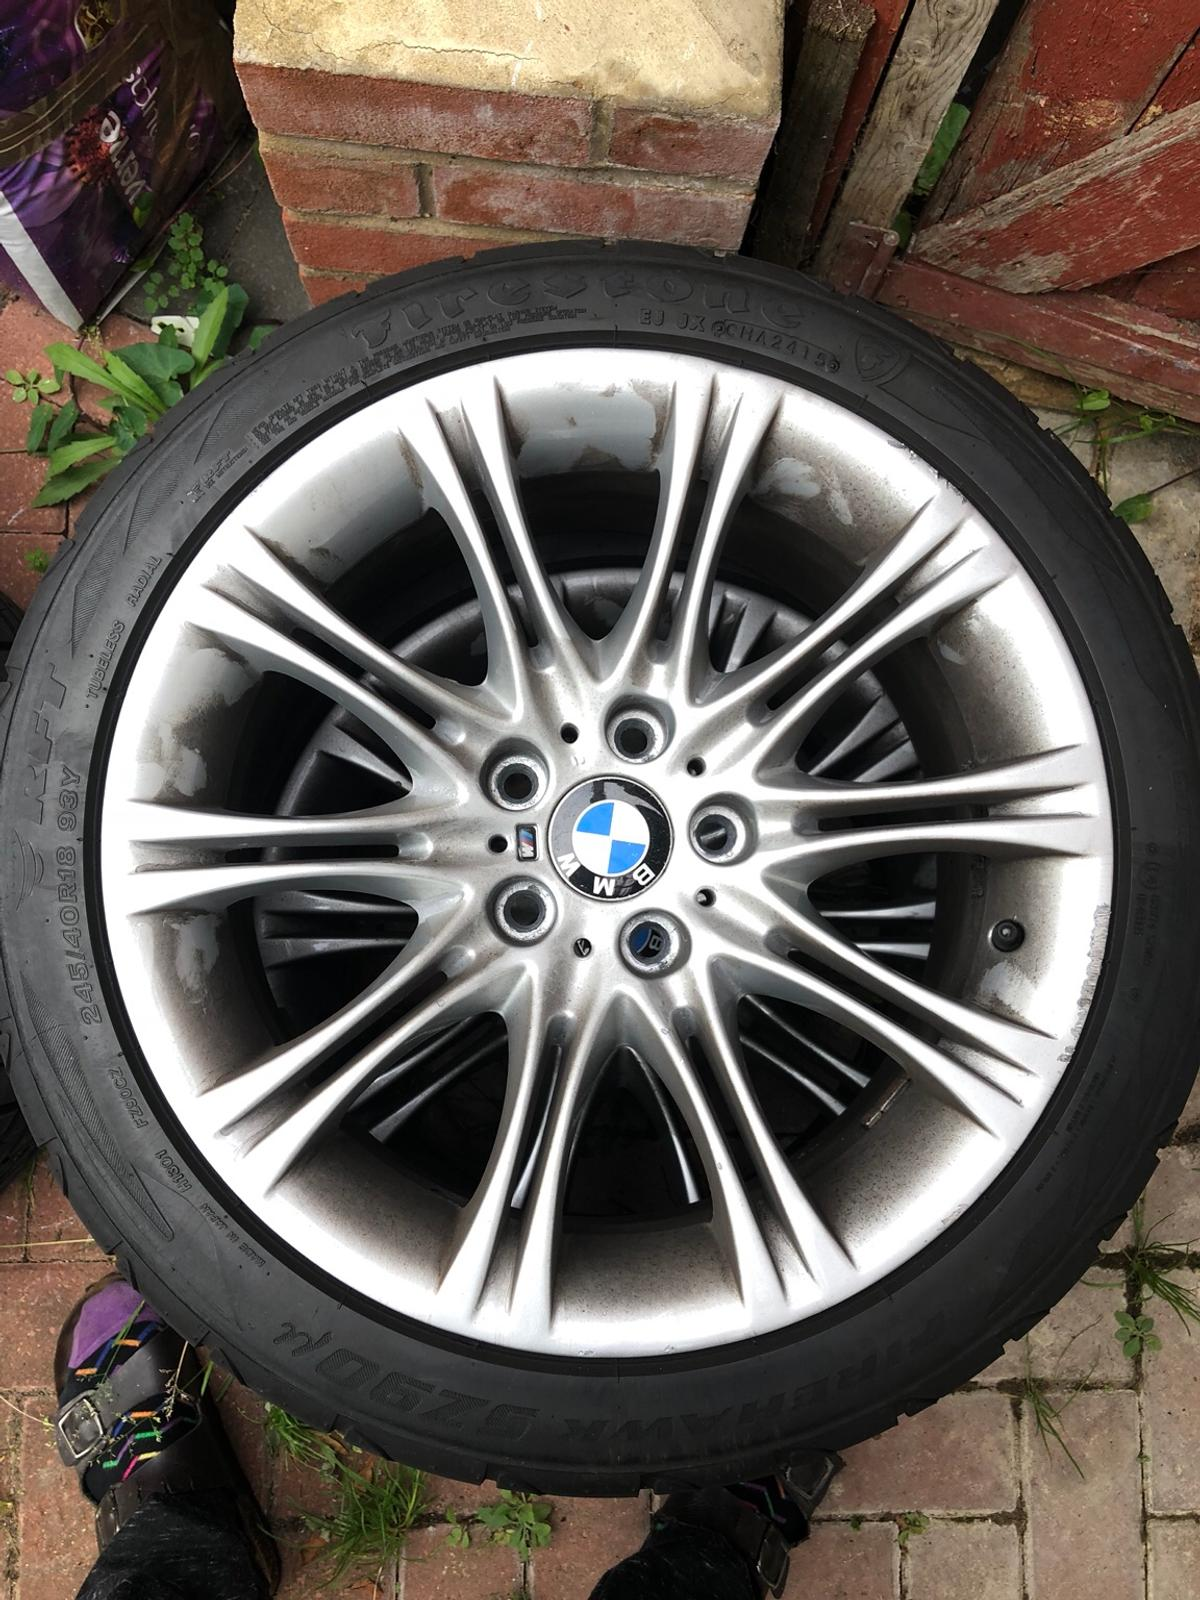 4x Bmw 5 Series E60 18 Alloys 245 40 18 In Sw19 London For 350 00 For Sale Shpock